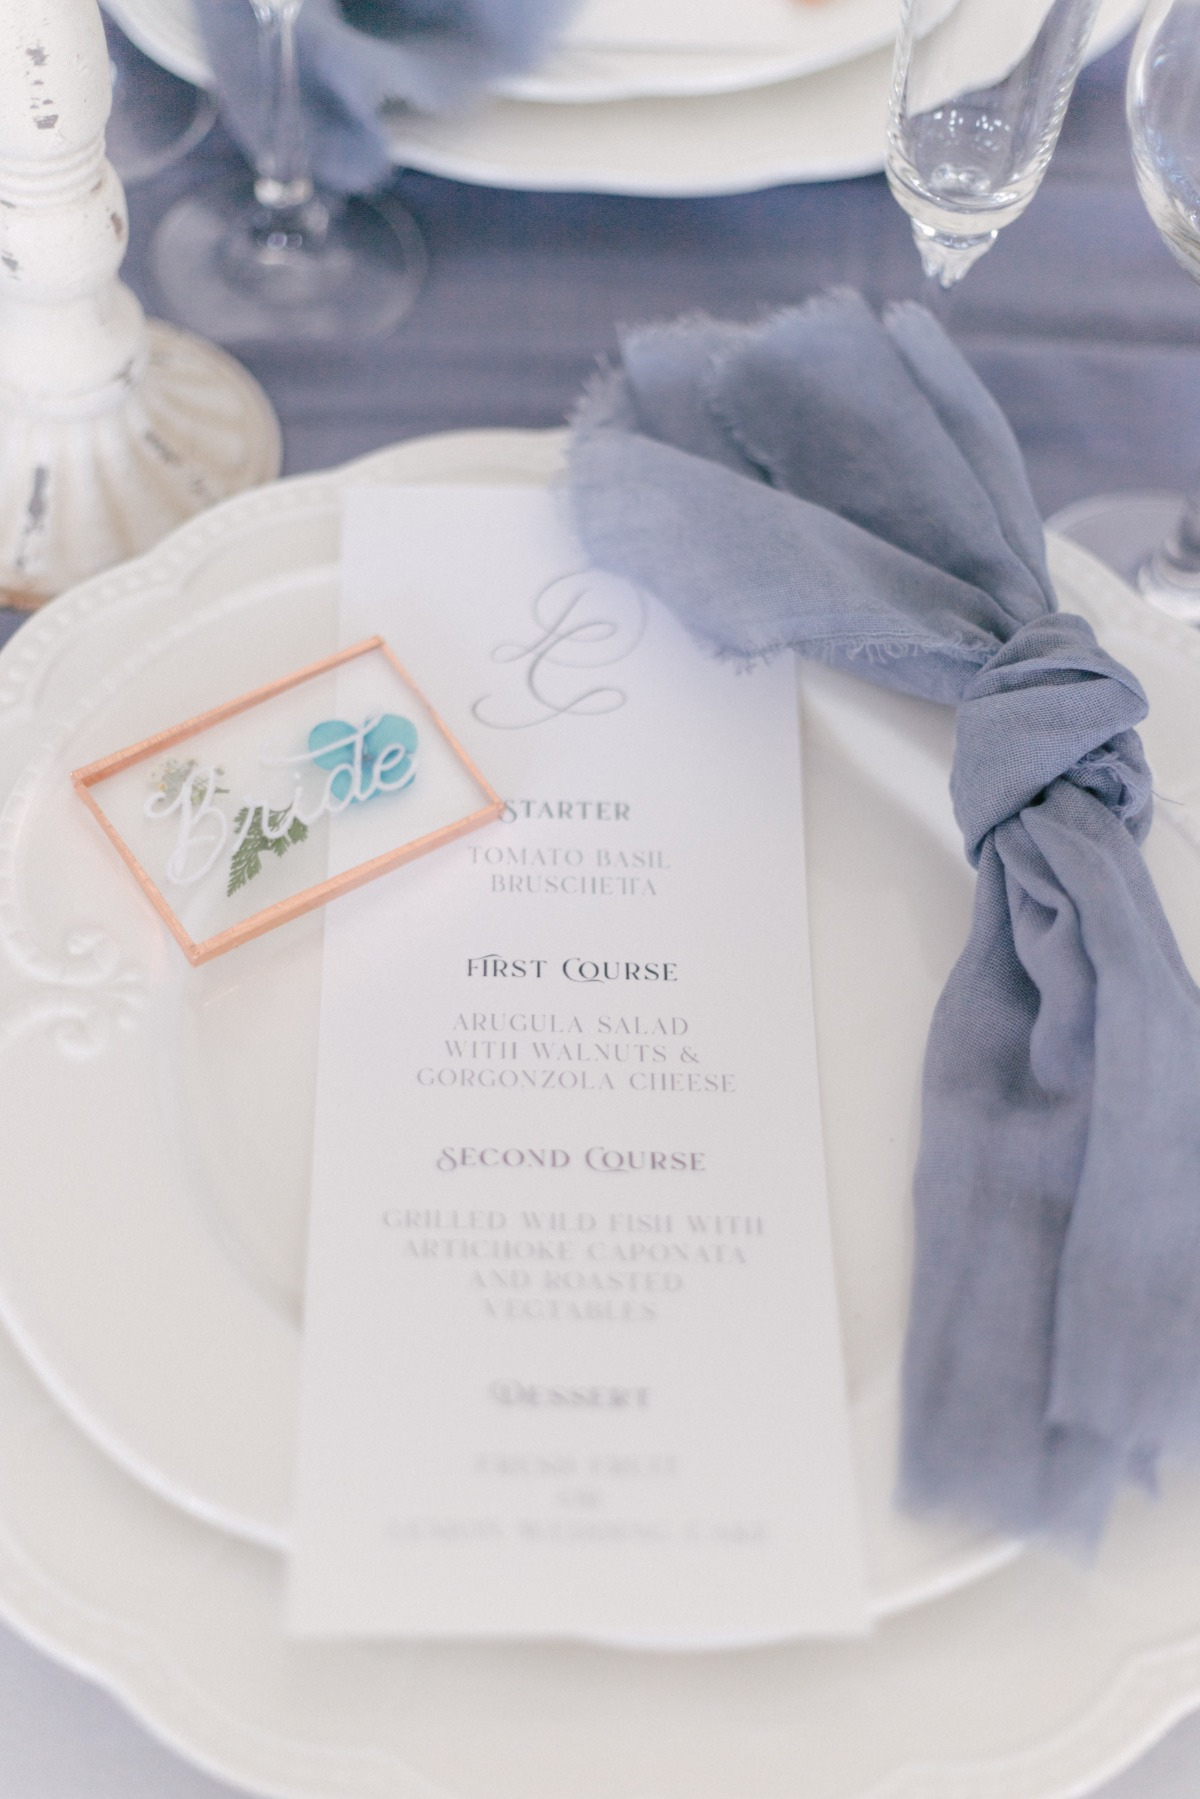 wedding menu with blue napkins